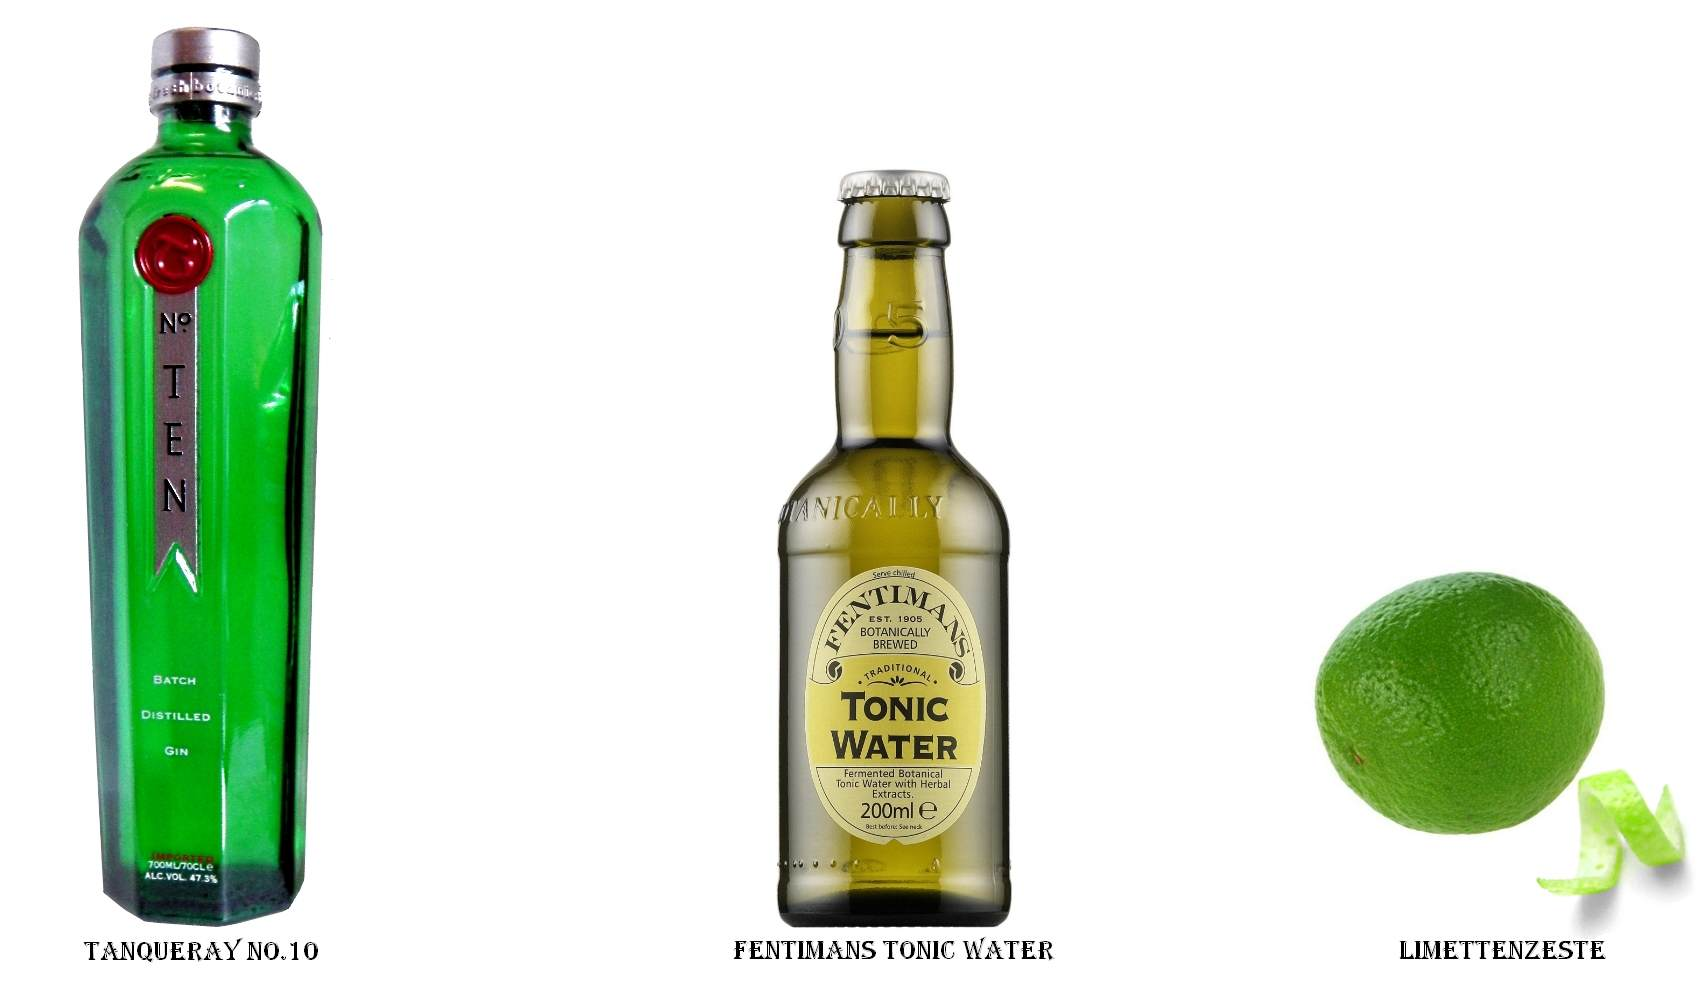 Tanqueray No.10 + Fentimans Tonic Water + Limettenzeste